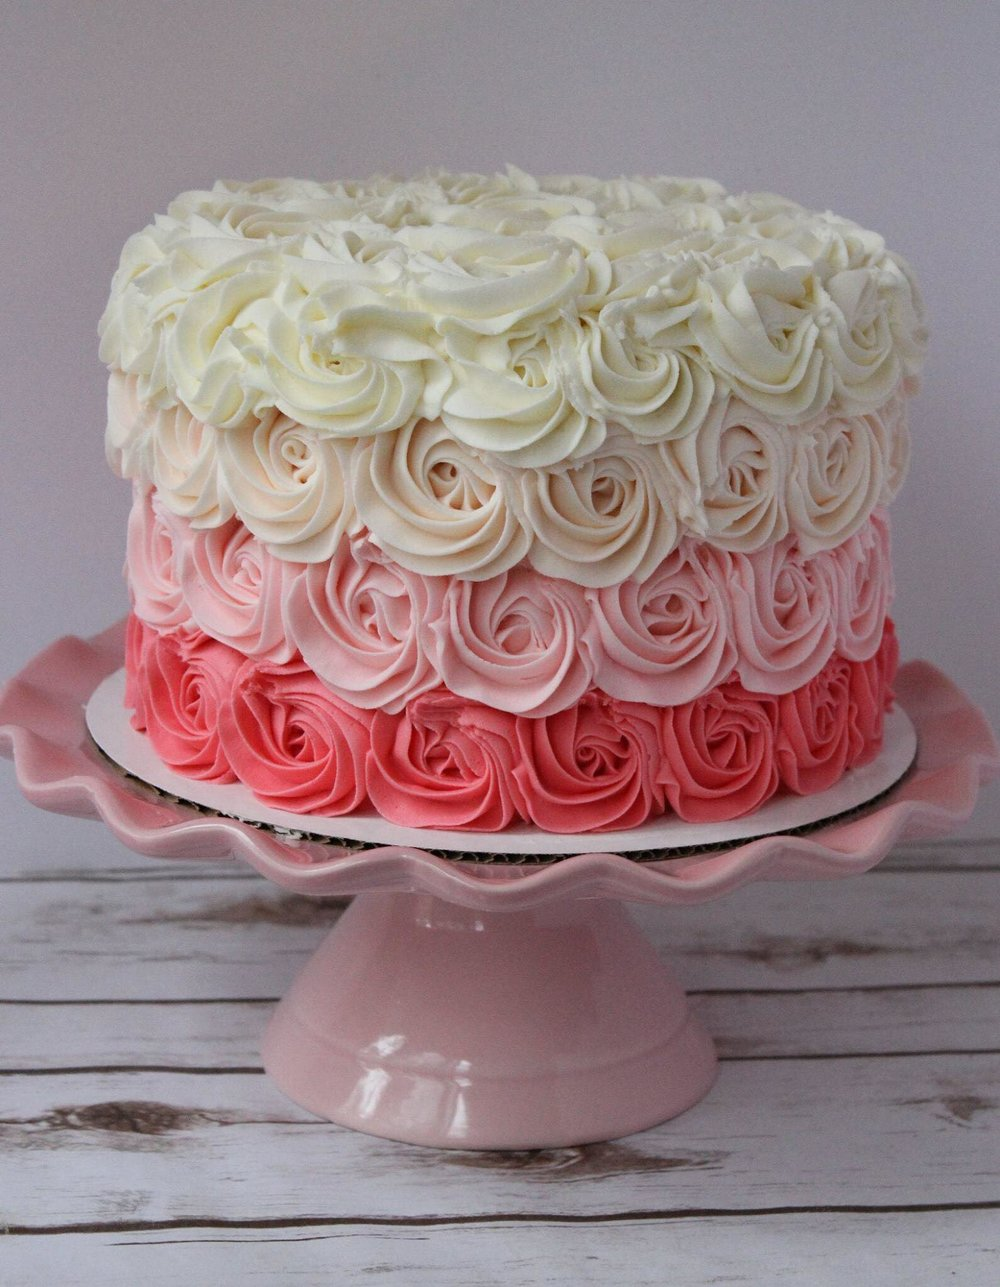 Ombre Rosette Cake - Let us know what color ombre you would like!6 inch $458 inch $559 inch $65